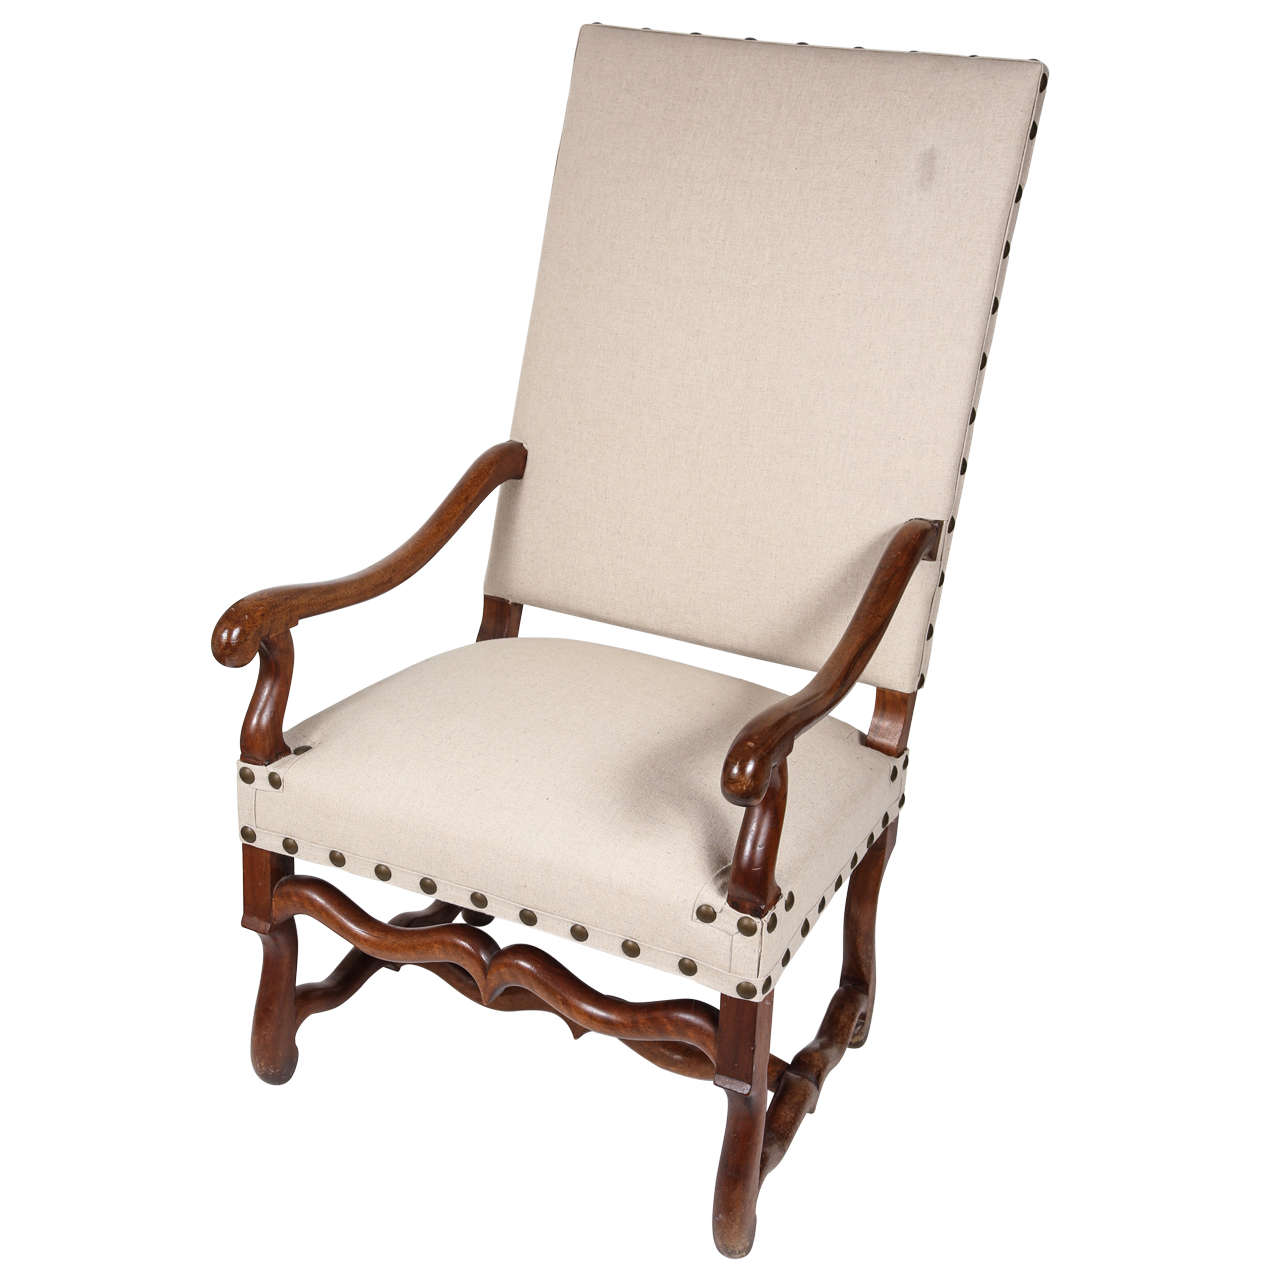 Early 20th Century Fauteuil Chair At 1stdibs